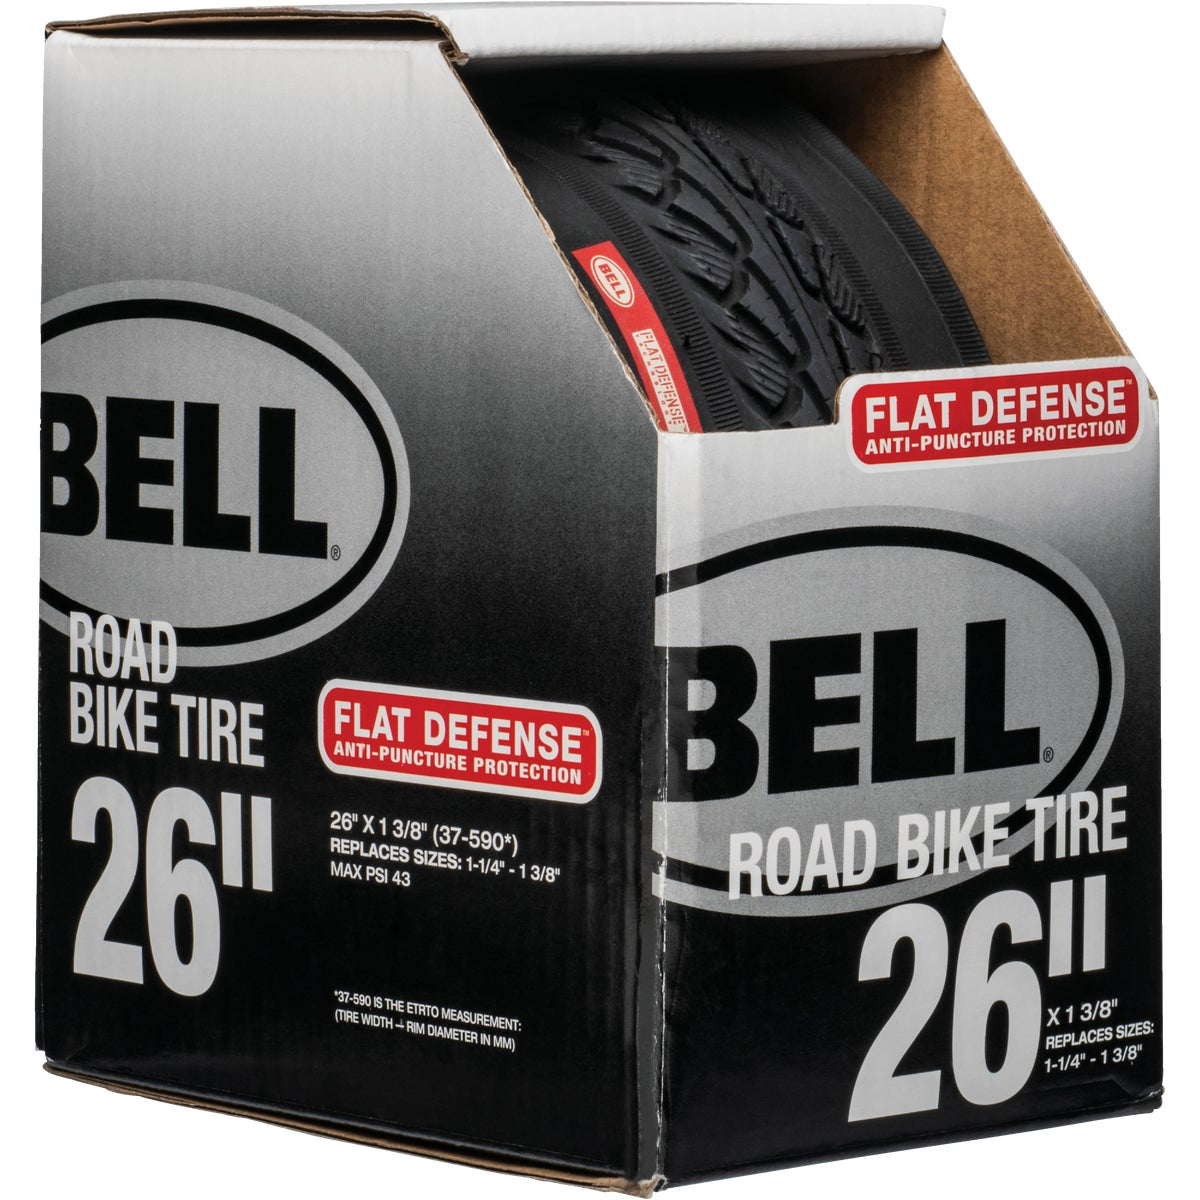 "26"" ROAD BIKE TIRE"